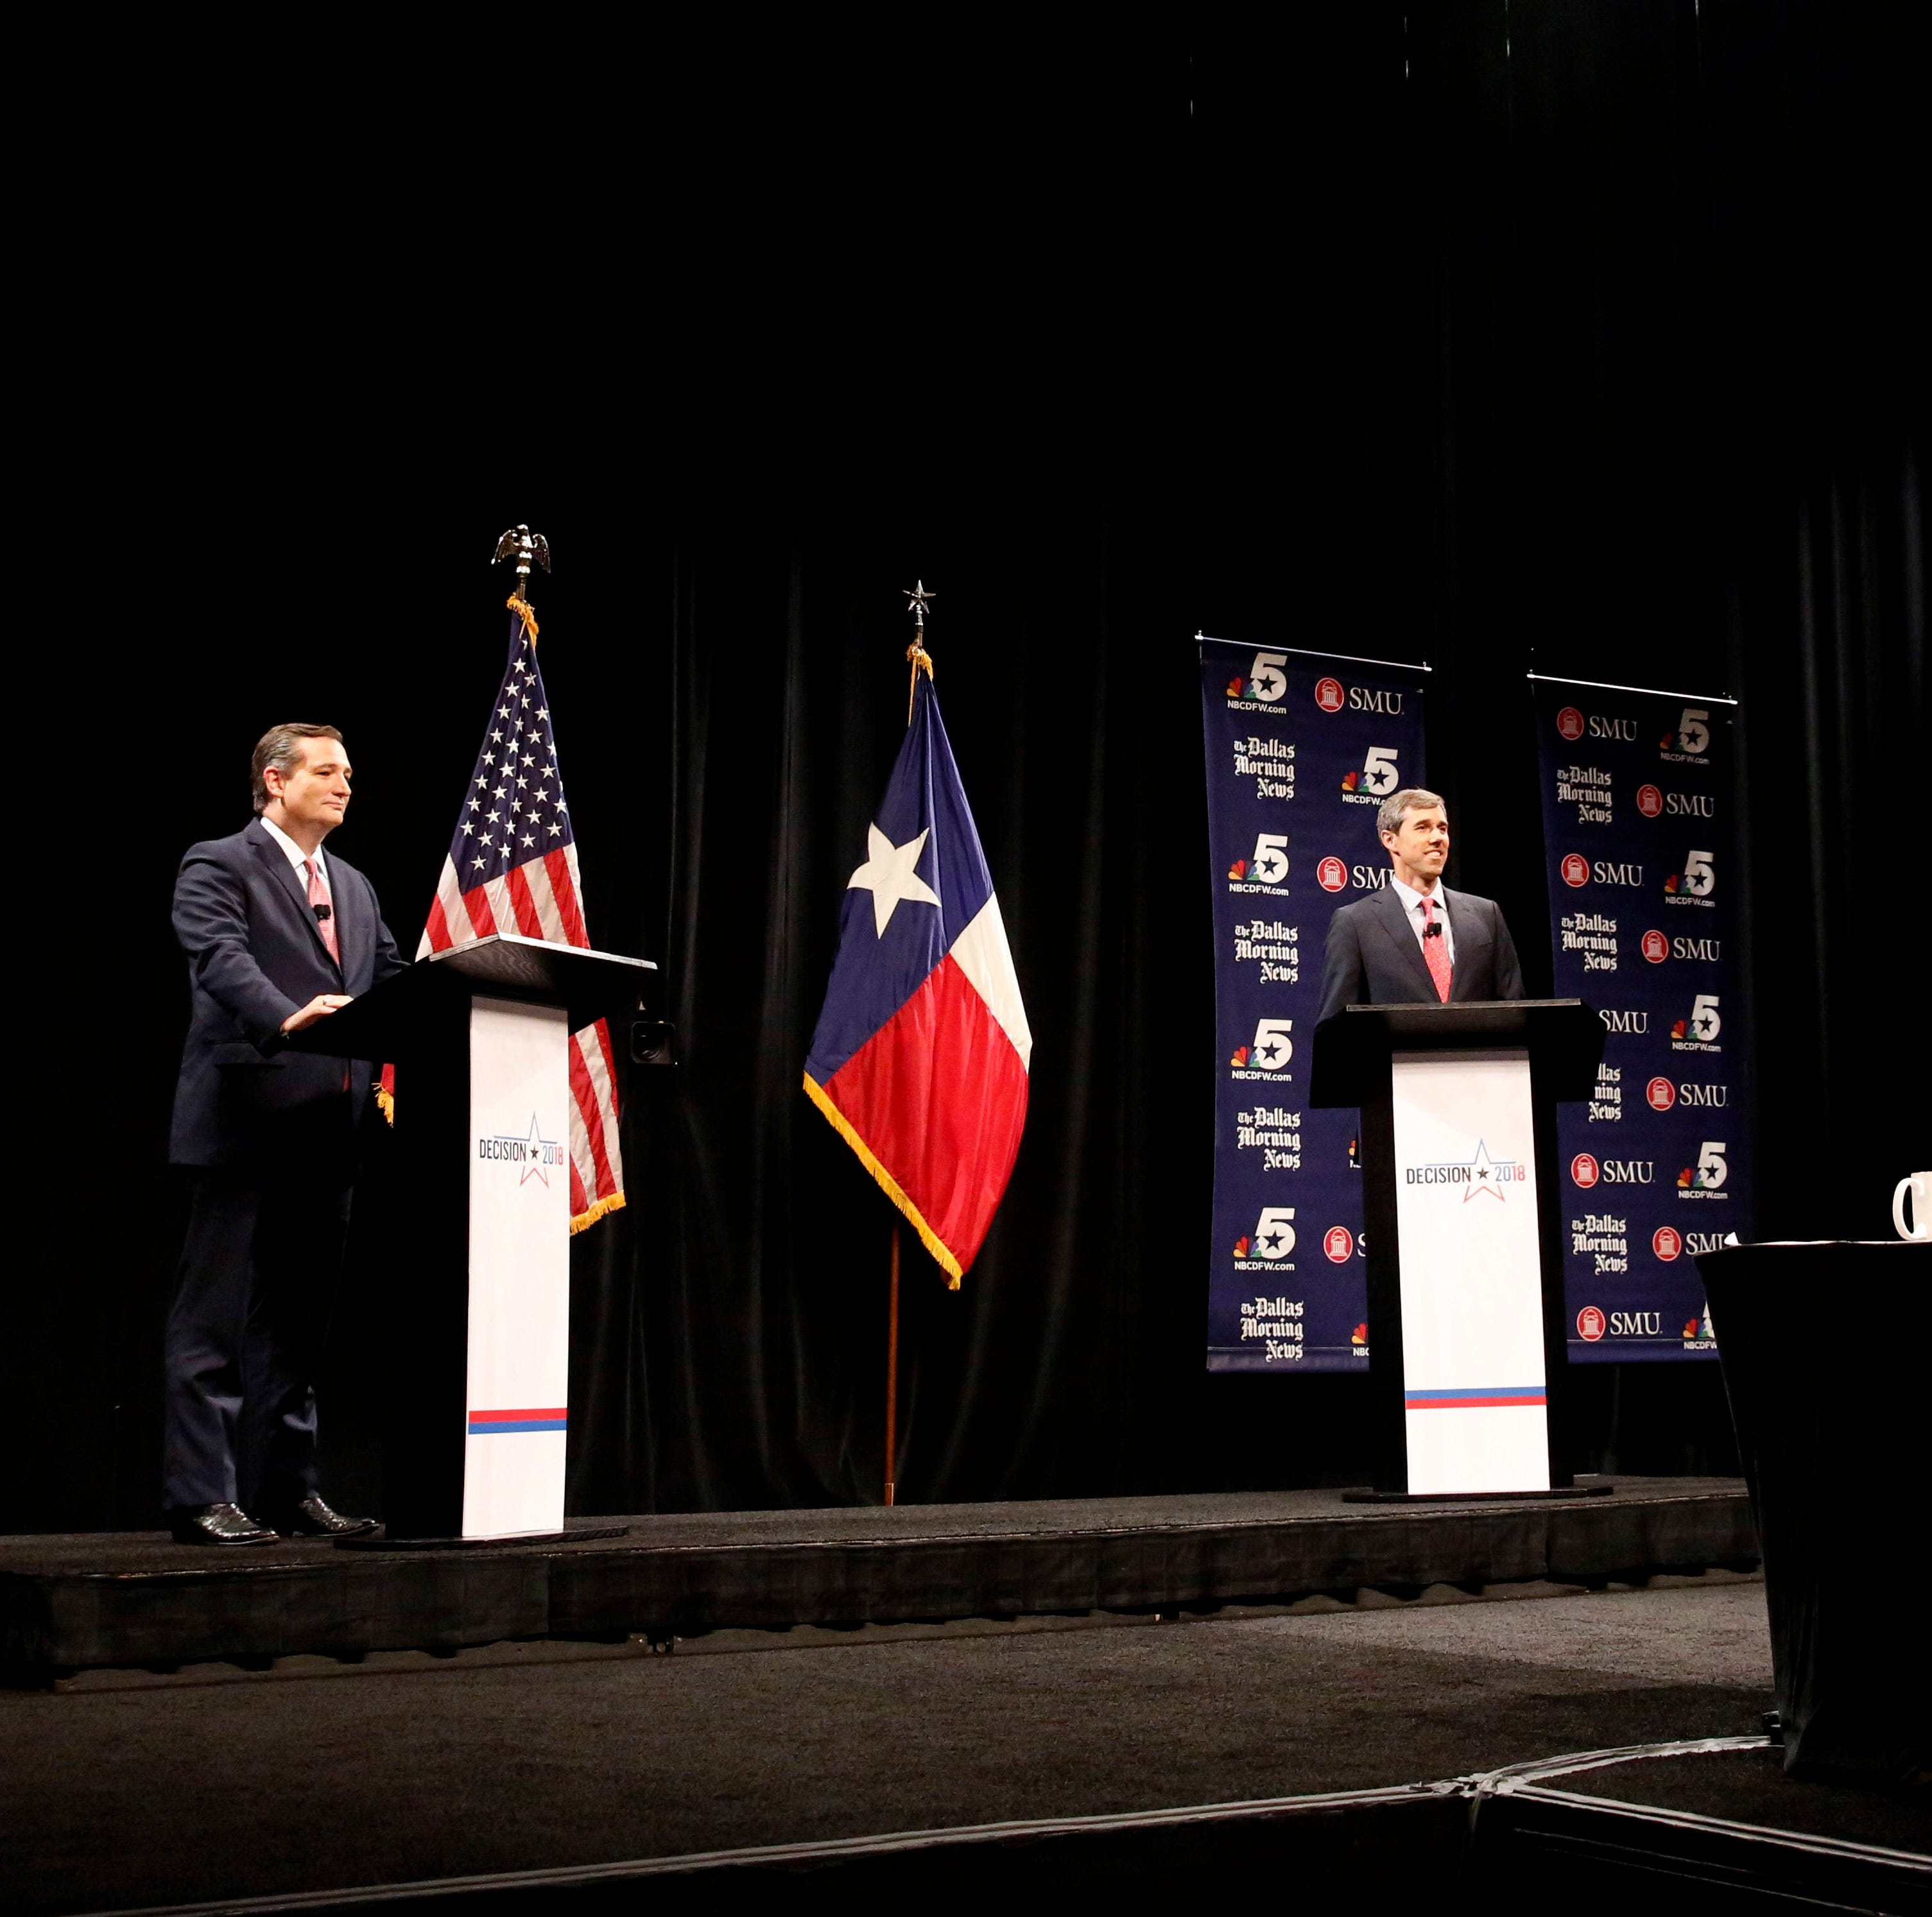 Beto-Cruz debates: What are viewers saying online?